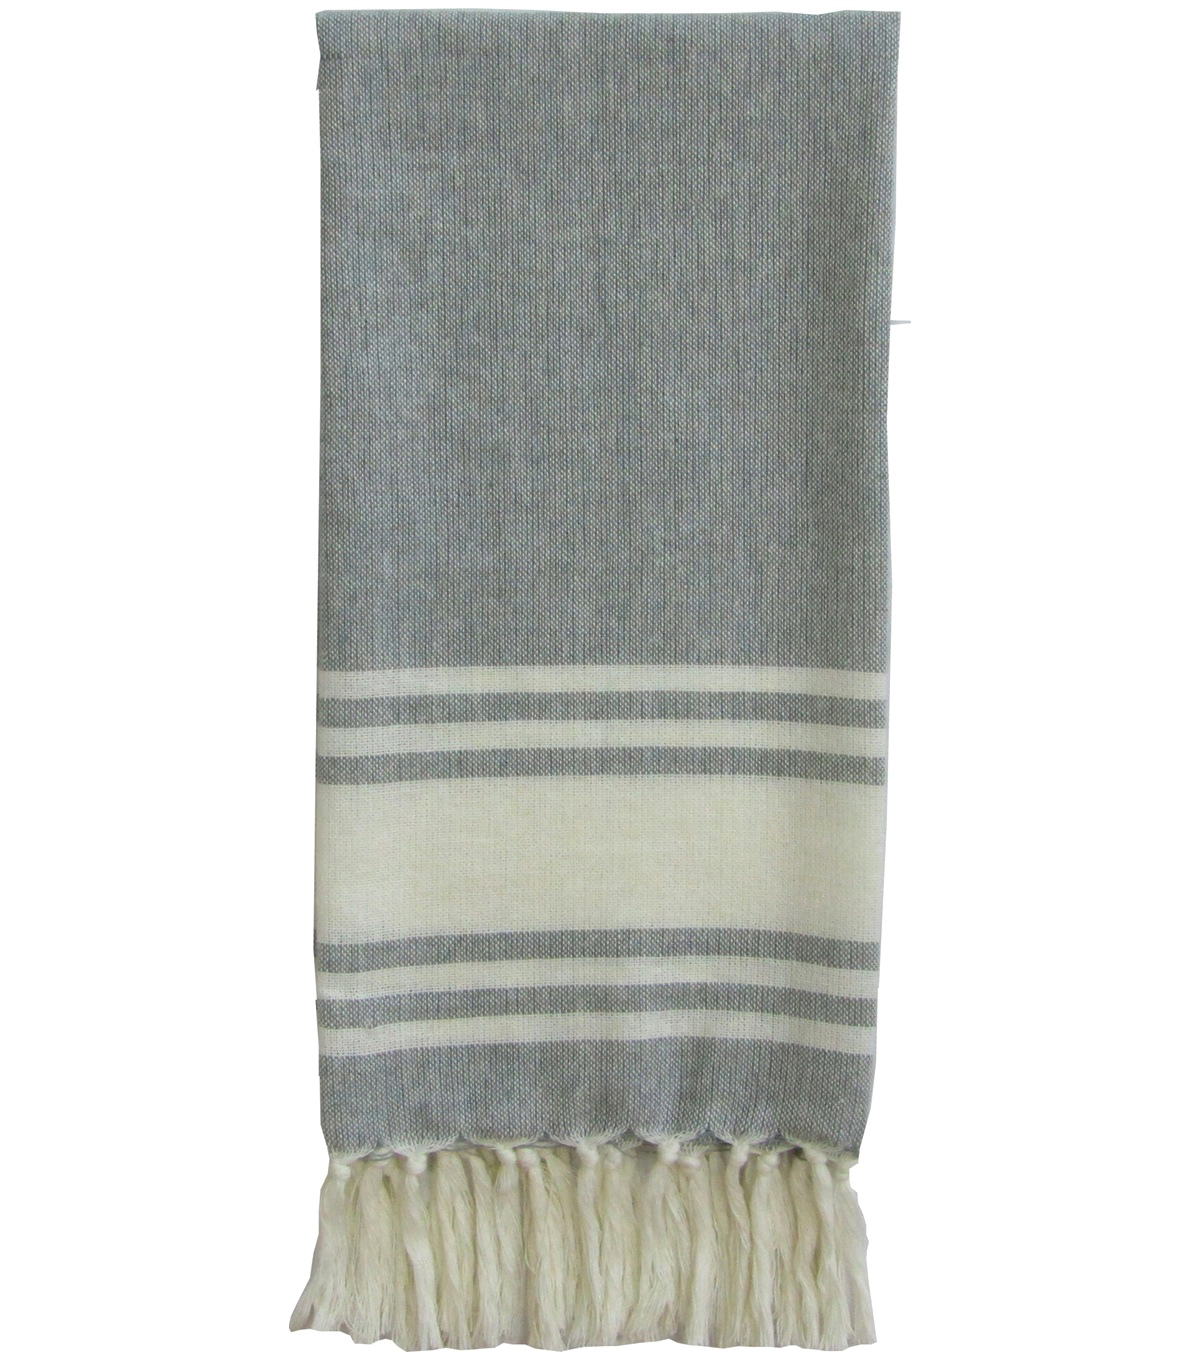 Hudson 43 Rustic 17\u0027\u0027x16\u0027\u0027 Towel-Blue Wide Stripes